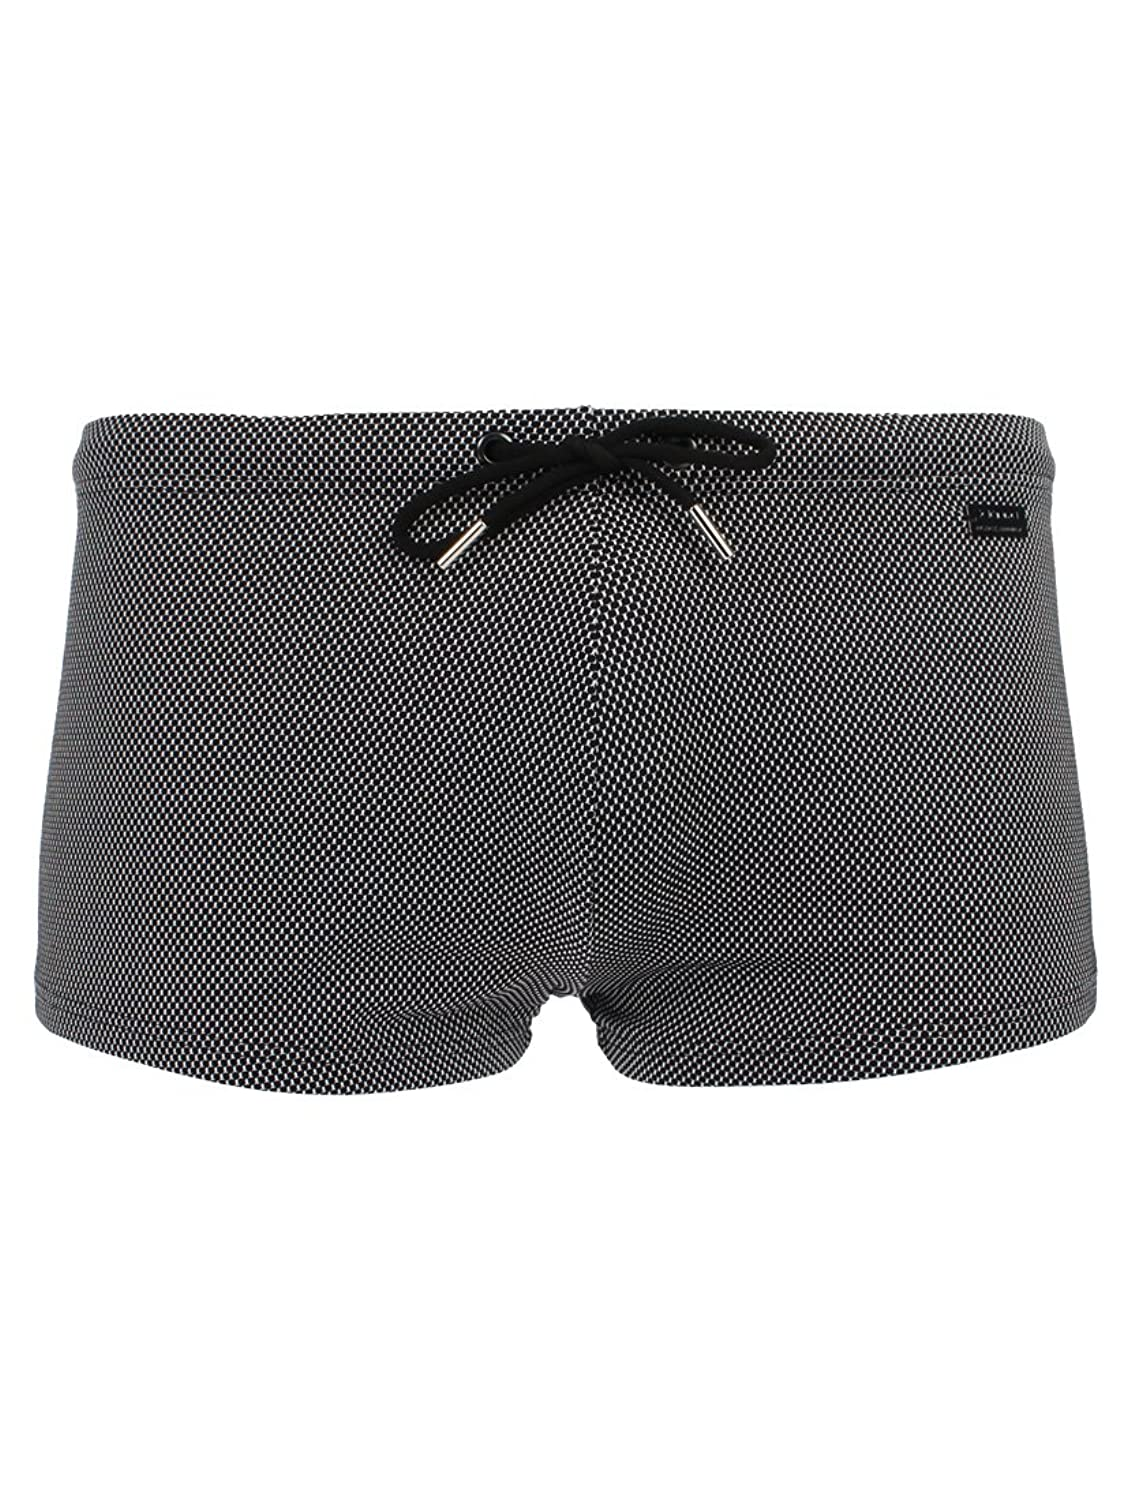 Hom Men's Plain or unicolor Boxer Shorts